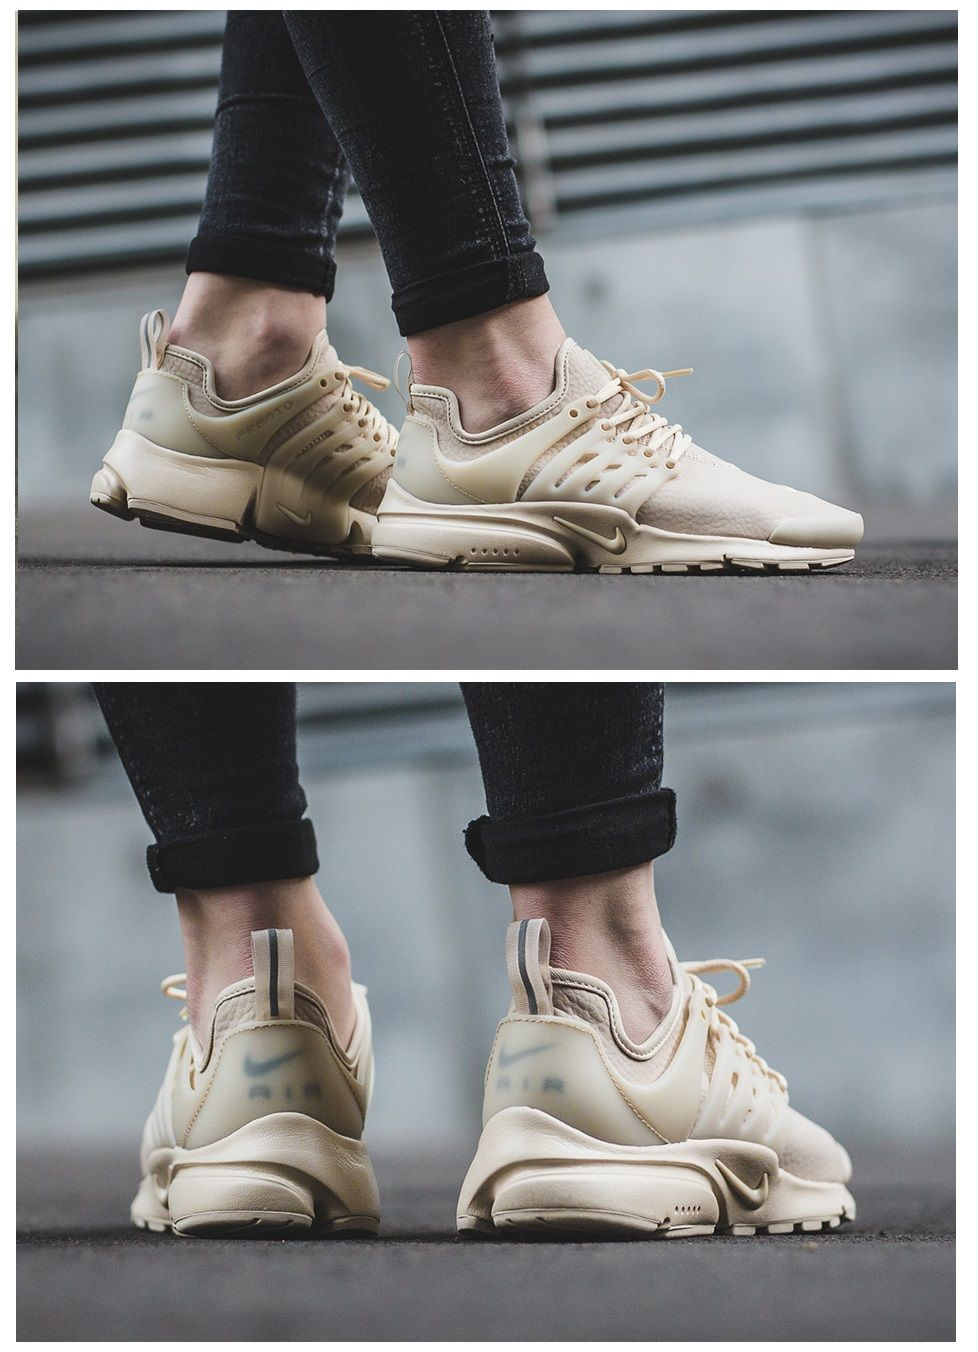 newest 9a021 08d1c Nike Air Presto  Oatmeal